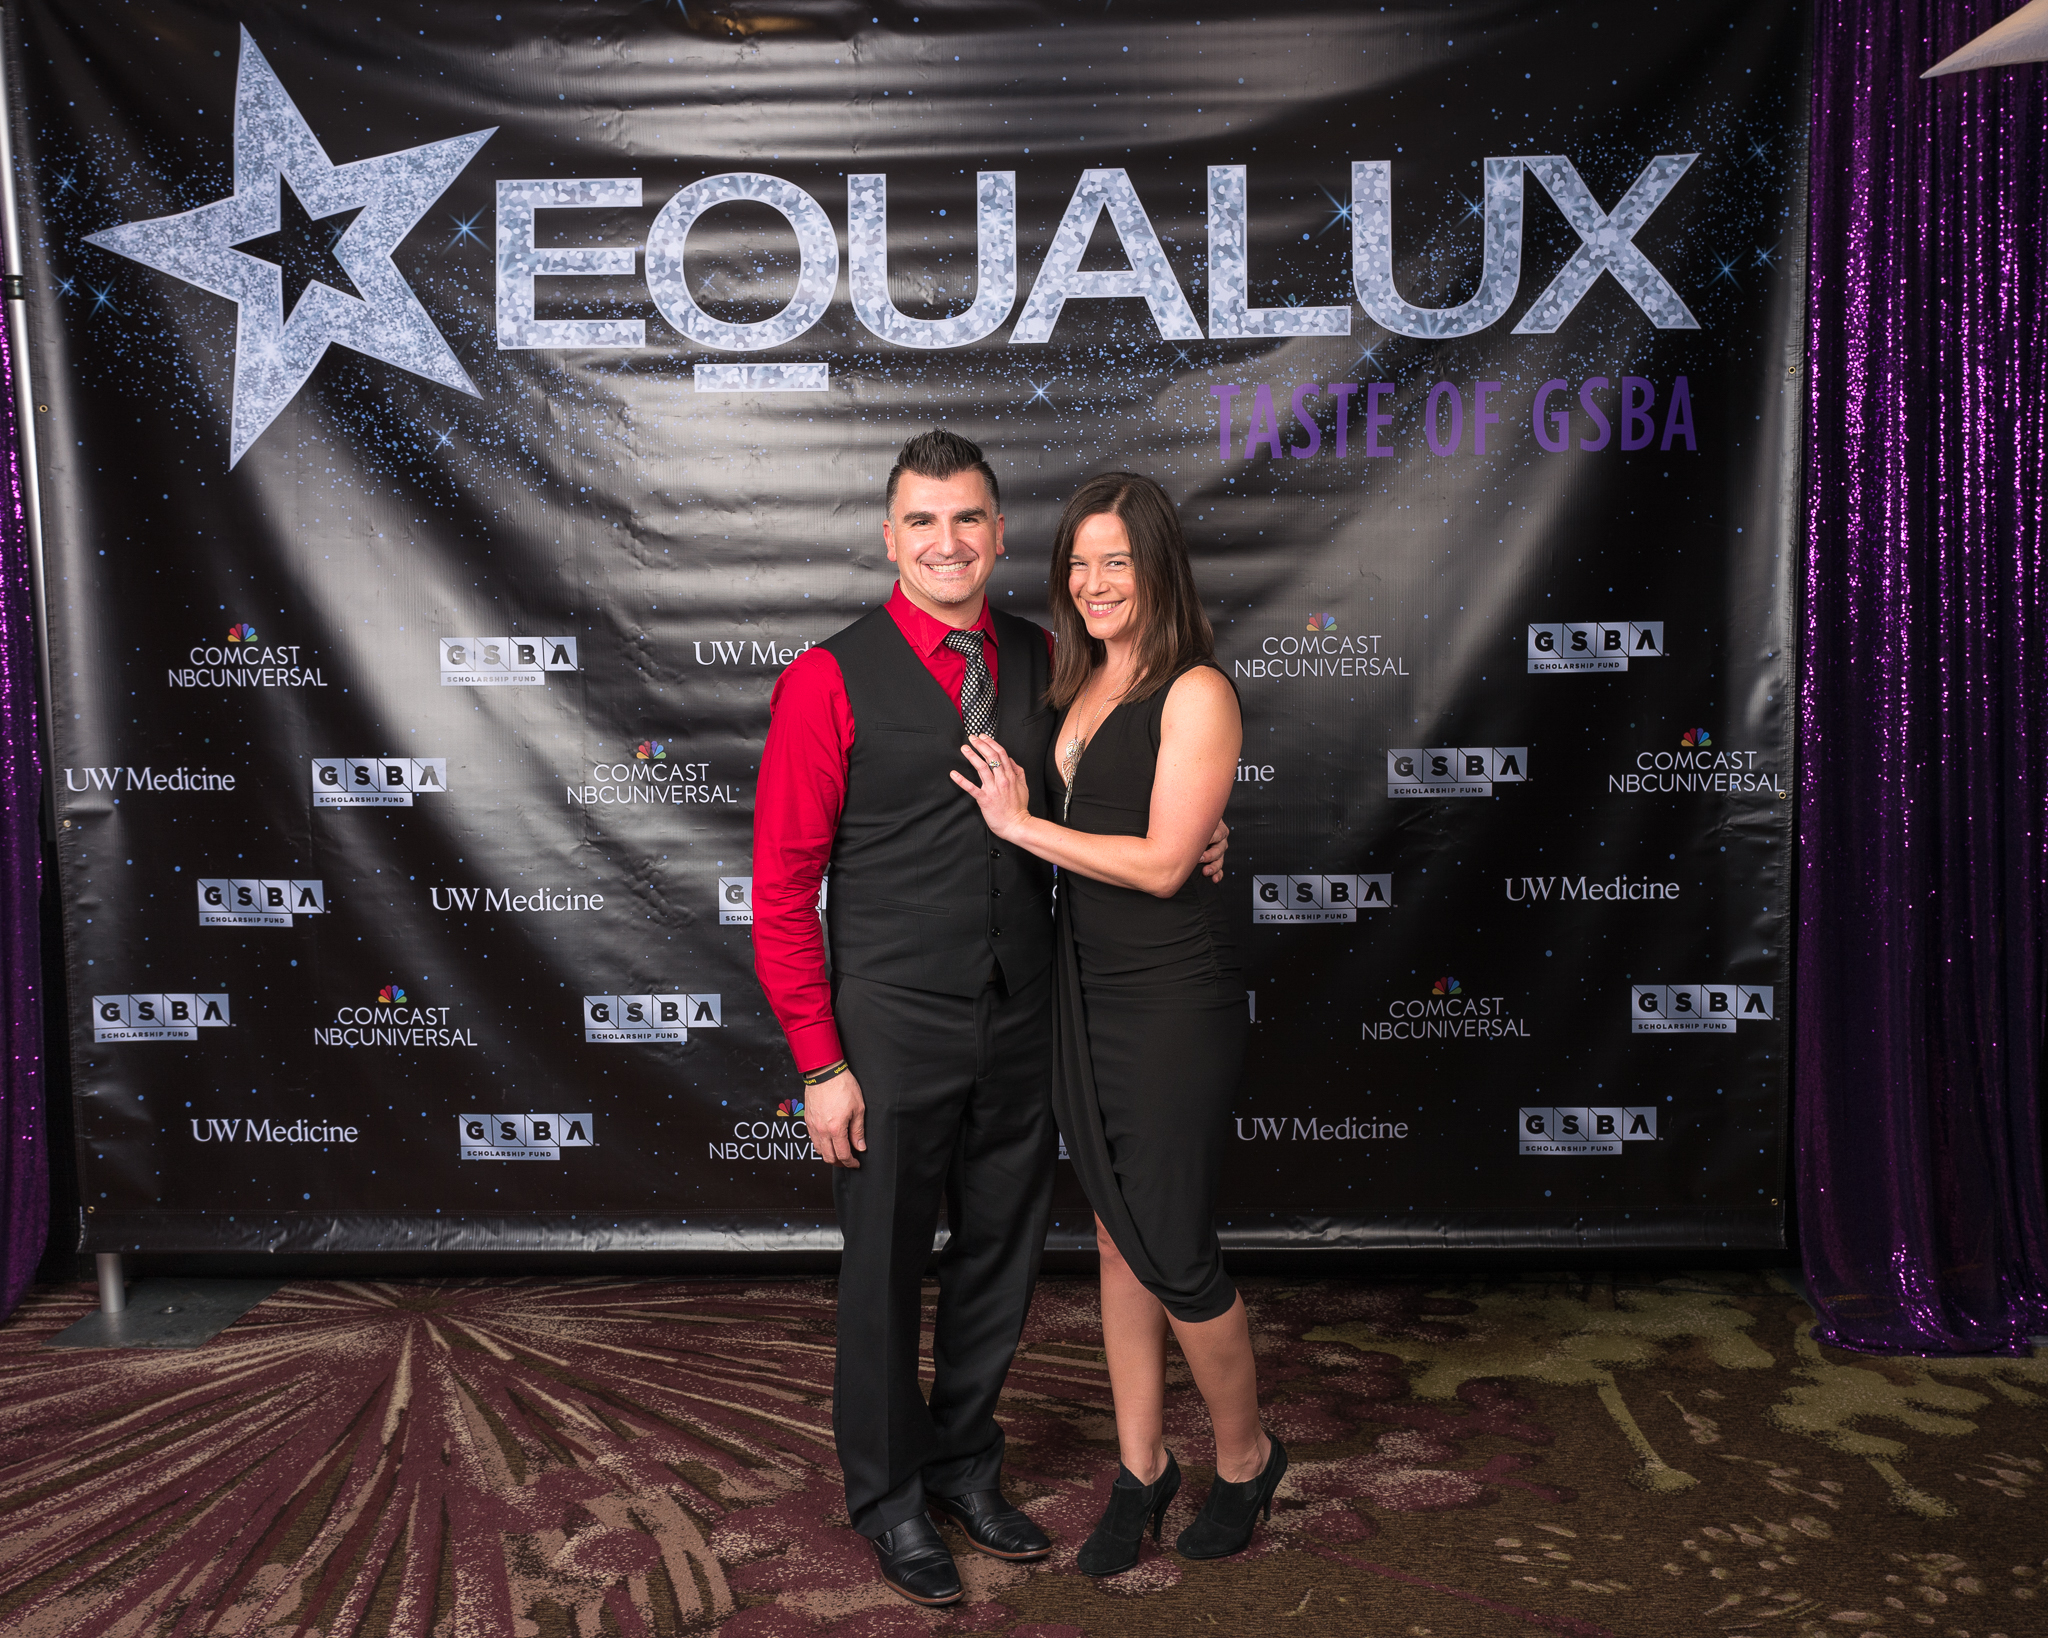 111718_GSBA EQUALUX at The Westin Seattle (Credit- Nate Gowdy)-38.jpg